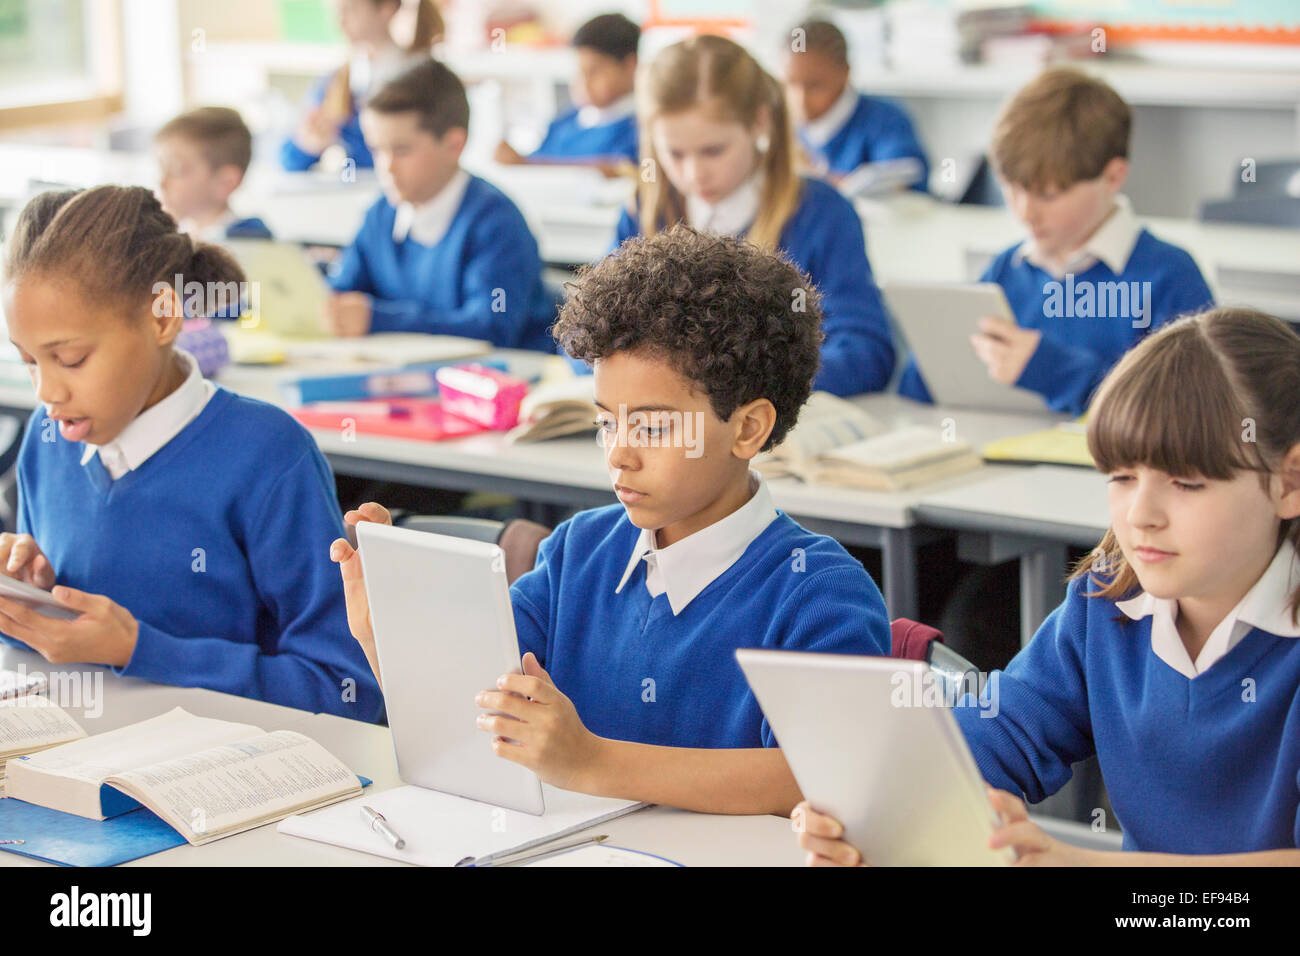 Elementary school children with digital tablets in classroom - Stock Image